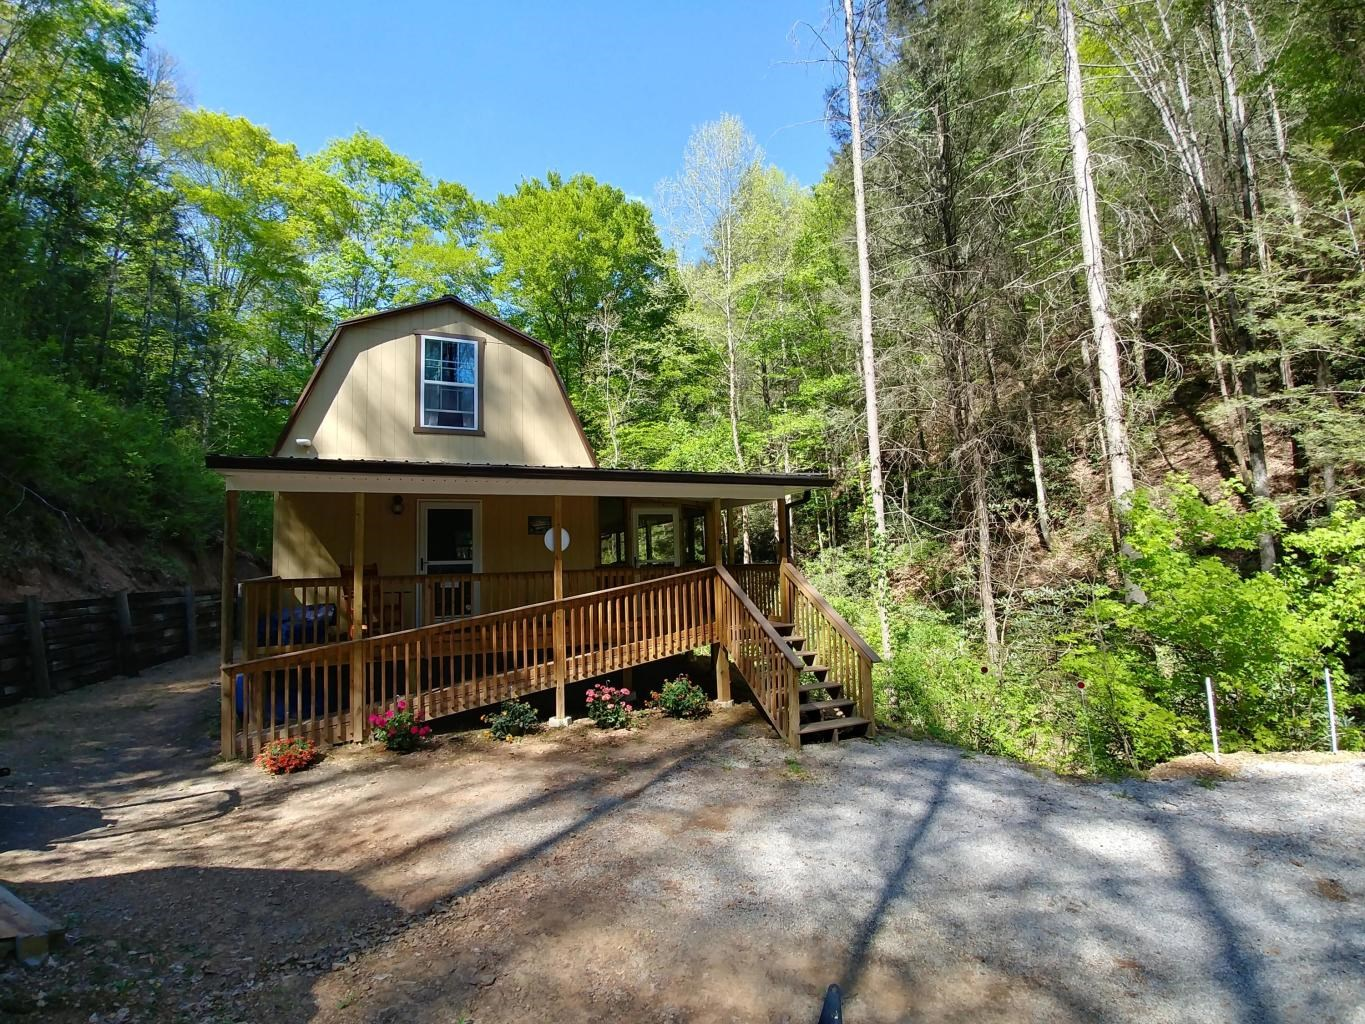 900 Sq. Ft. Tiny Home in Sneedville, TN